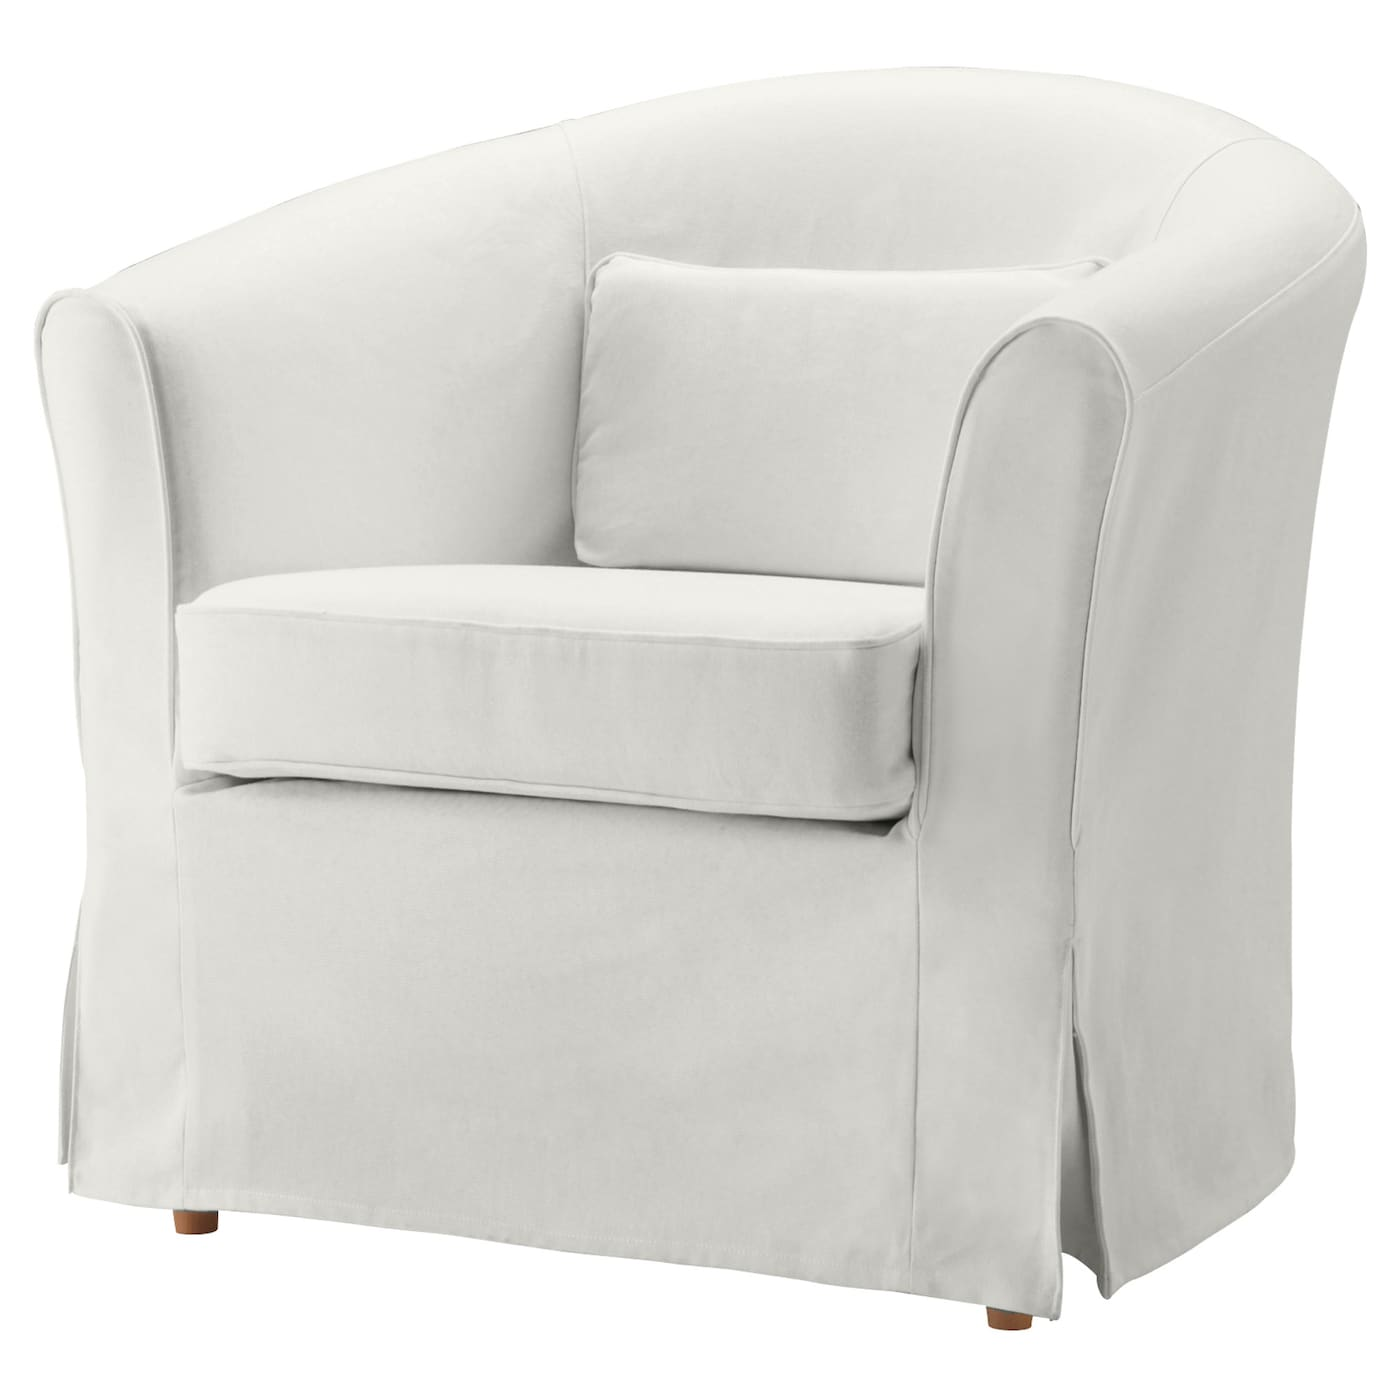 IKEA TULLSTA armchair The cover is easy to keep clean as it is removable and can be machine washed.